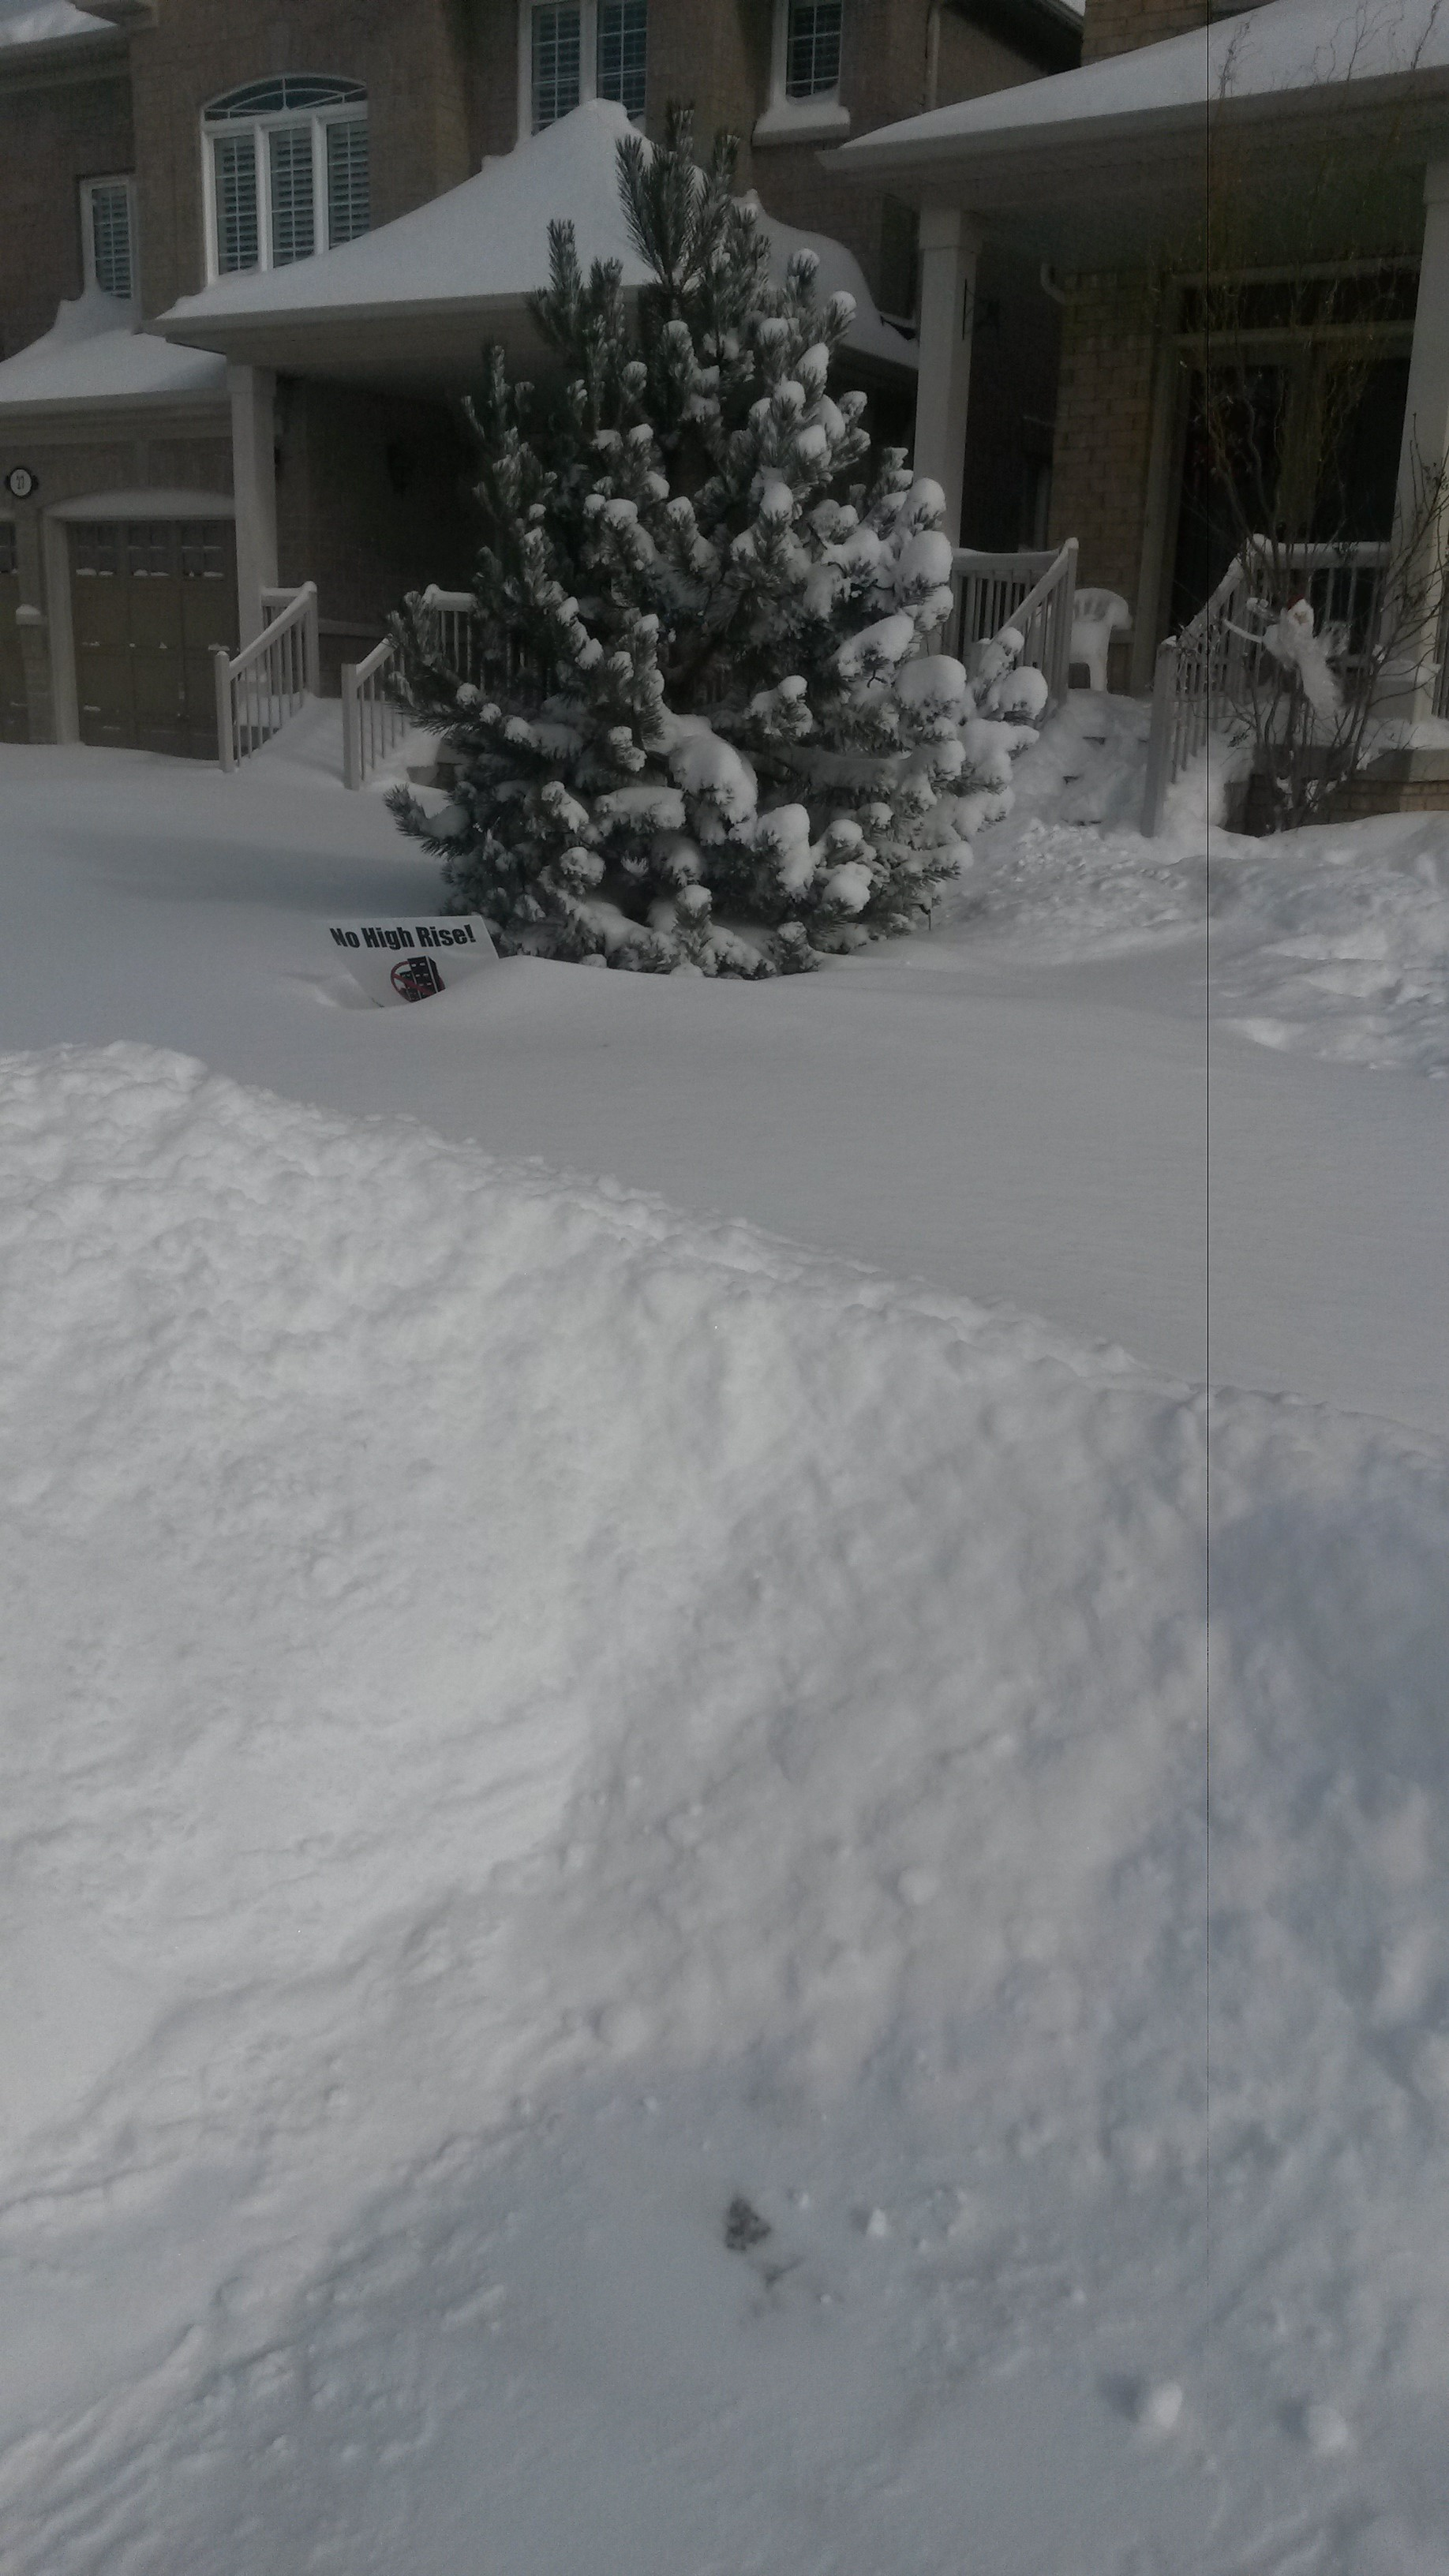 Homeowners' responsibility: shovel snow